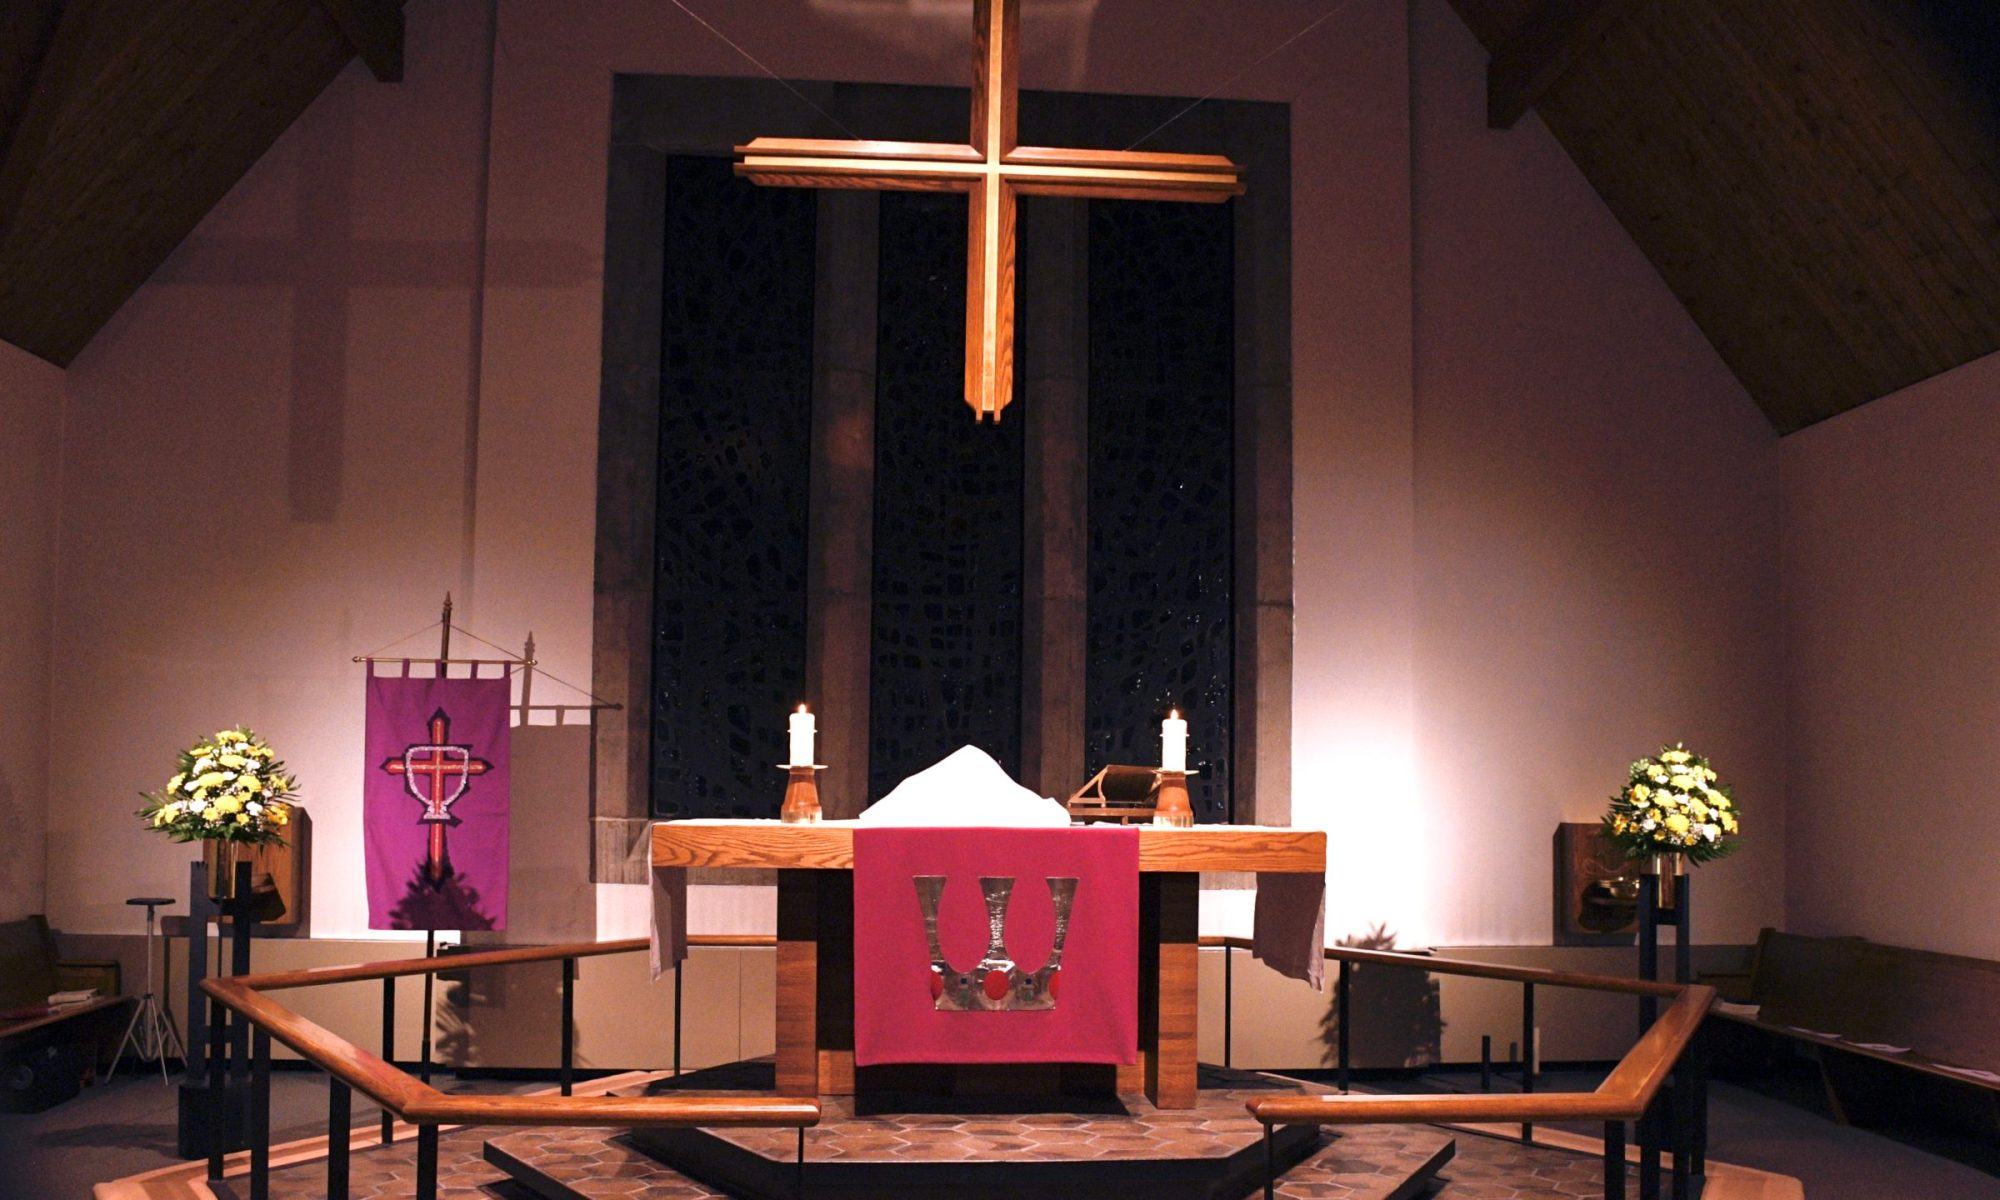 St. Mark's altar during Lent